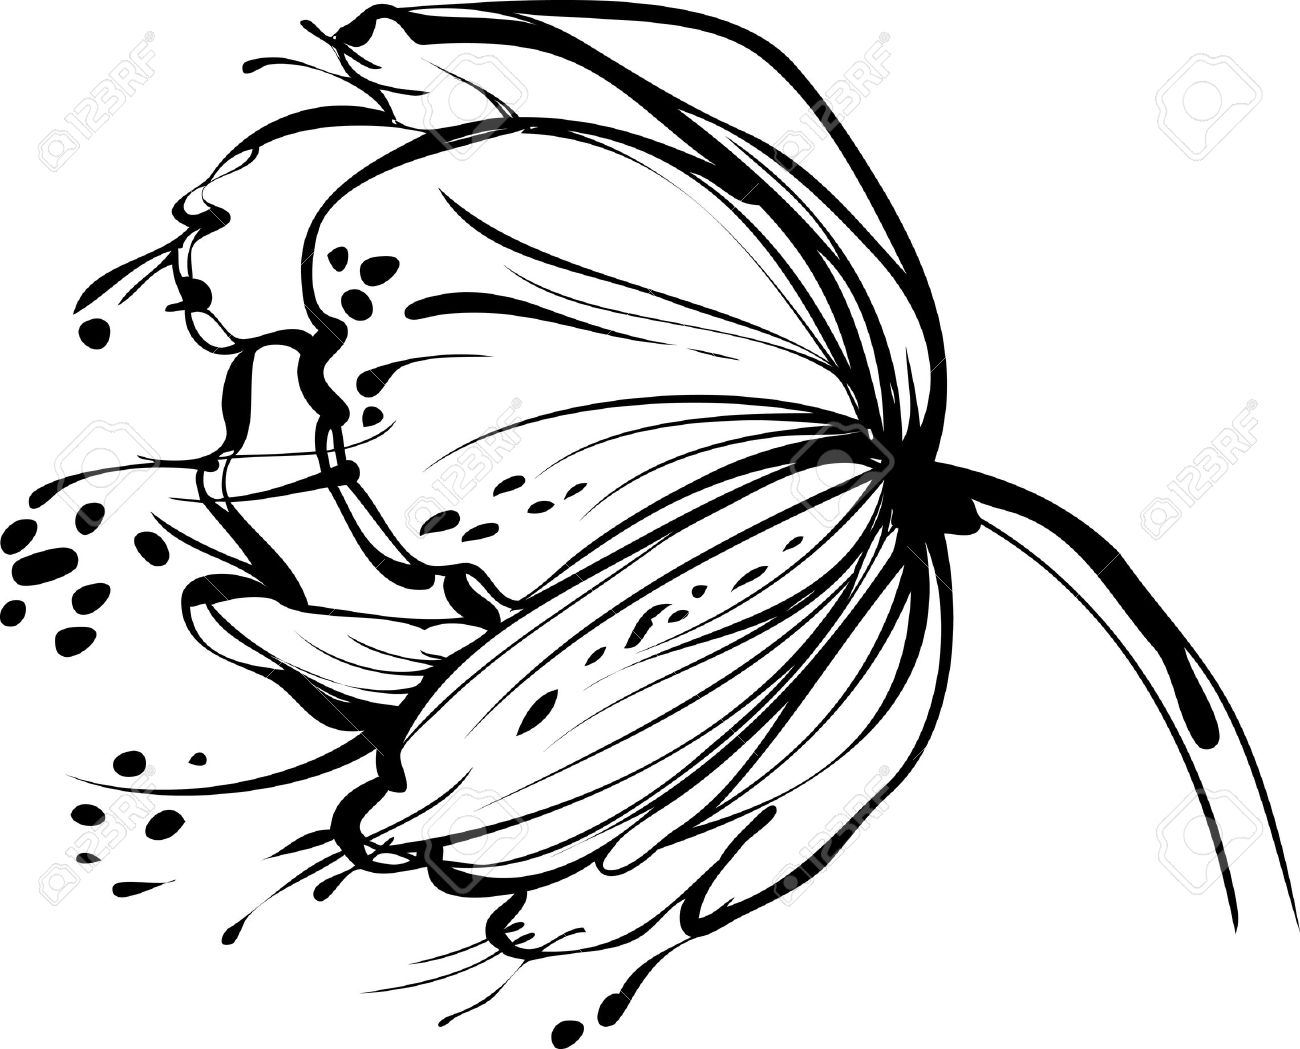 A image of nature white flower bud royalty free cliparts vectors a image of nature white flower bud stock vector 10681103 mightylinksfo